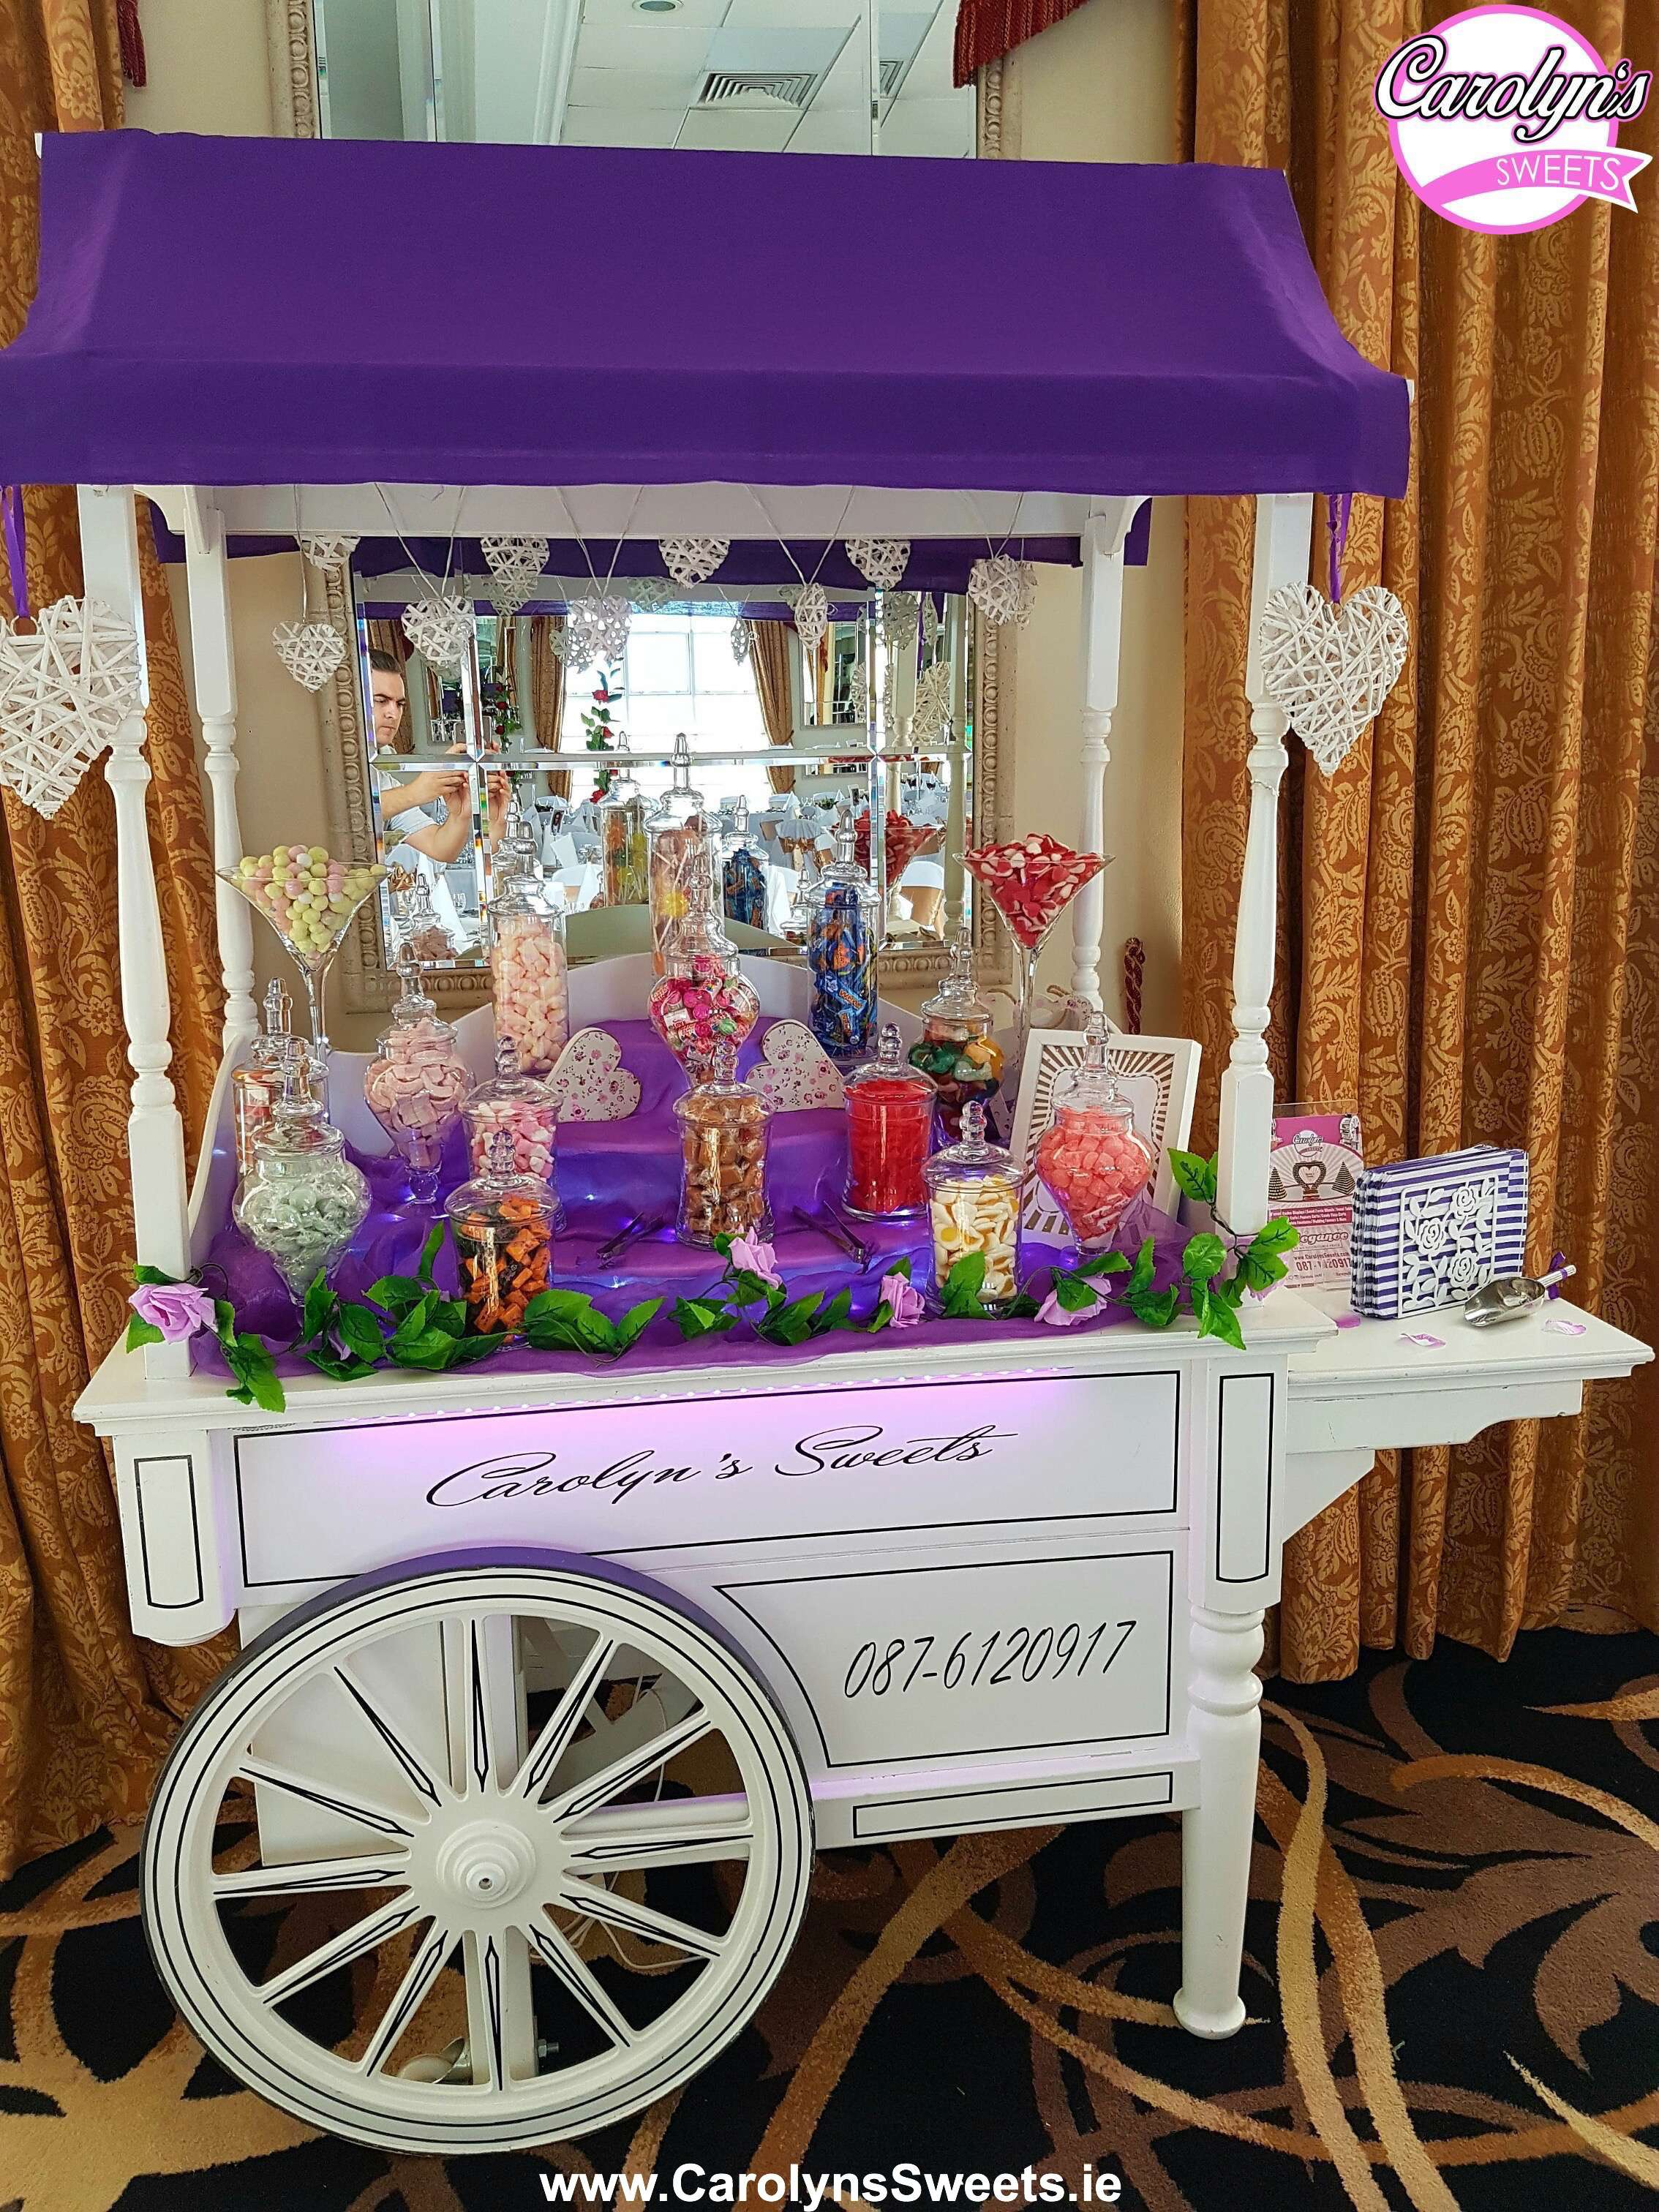 Luxury Candy Cart Hire by Carolyns Sweets Prices from 175